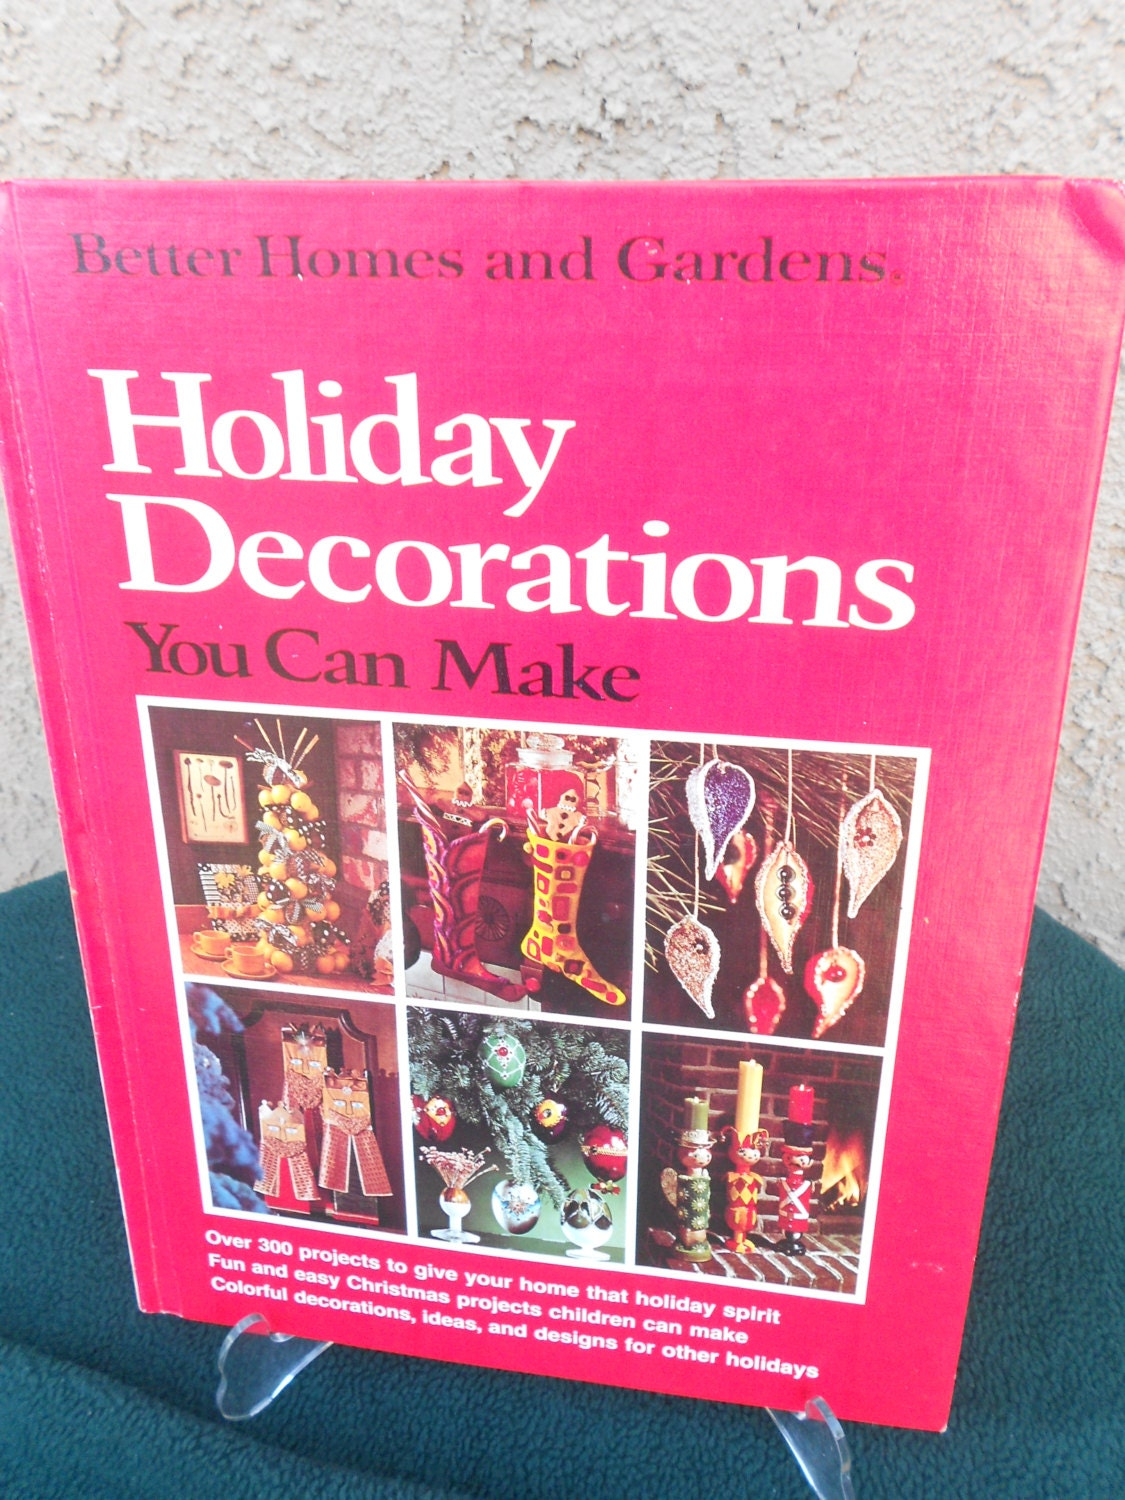 Better homes and gardens christmas decorating ideas - Vintage Christmas Craft Book Holiday Decorations You Can Make Better Homes Gardens Hardcover Decorating Craft Book Vintage Christmas Decor